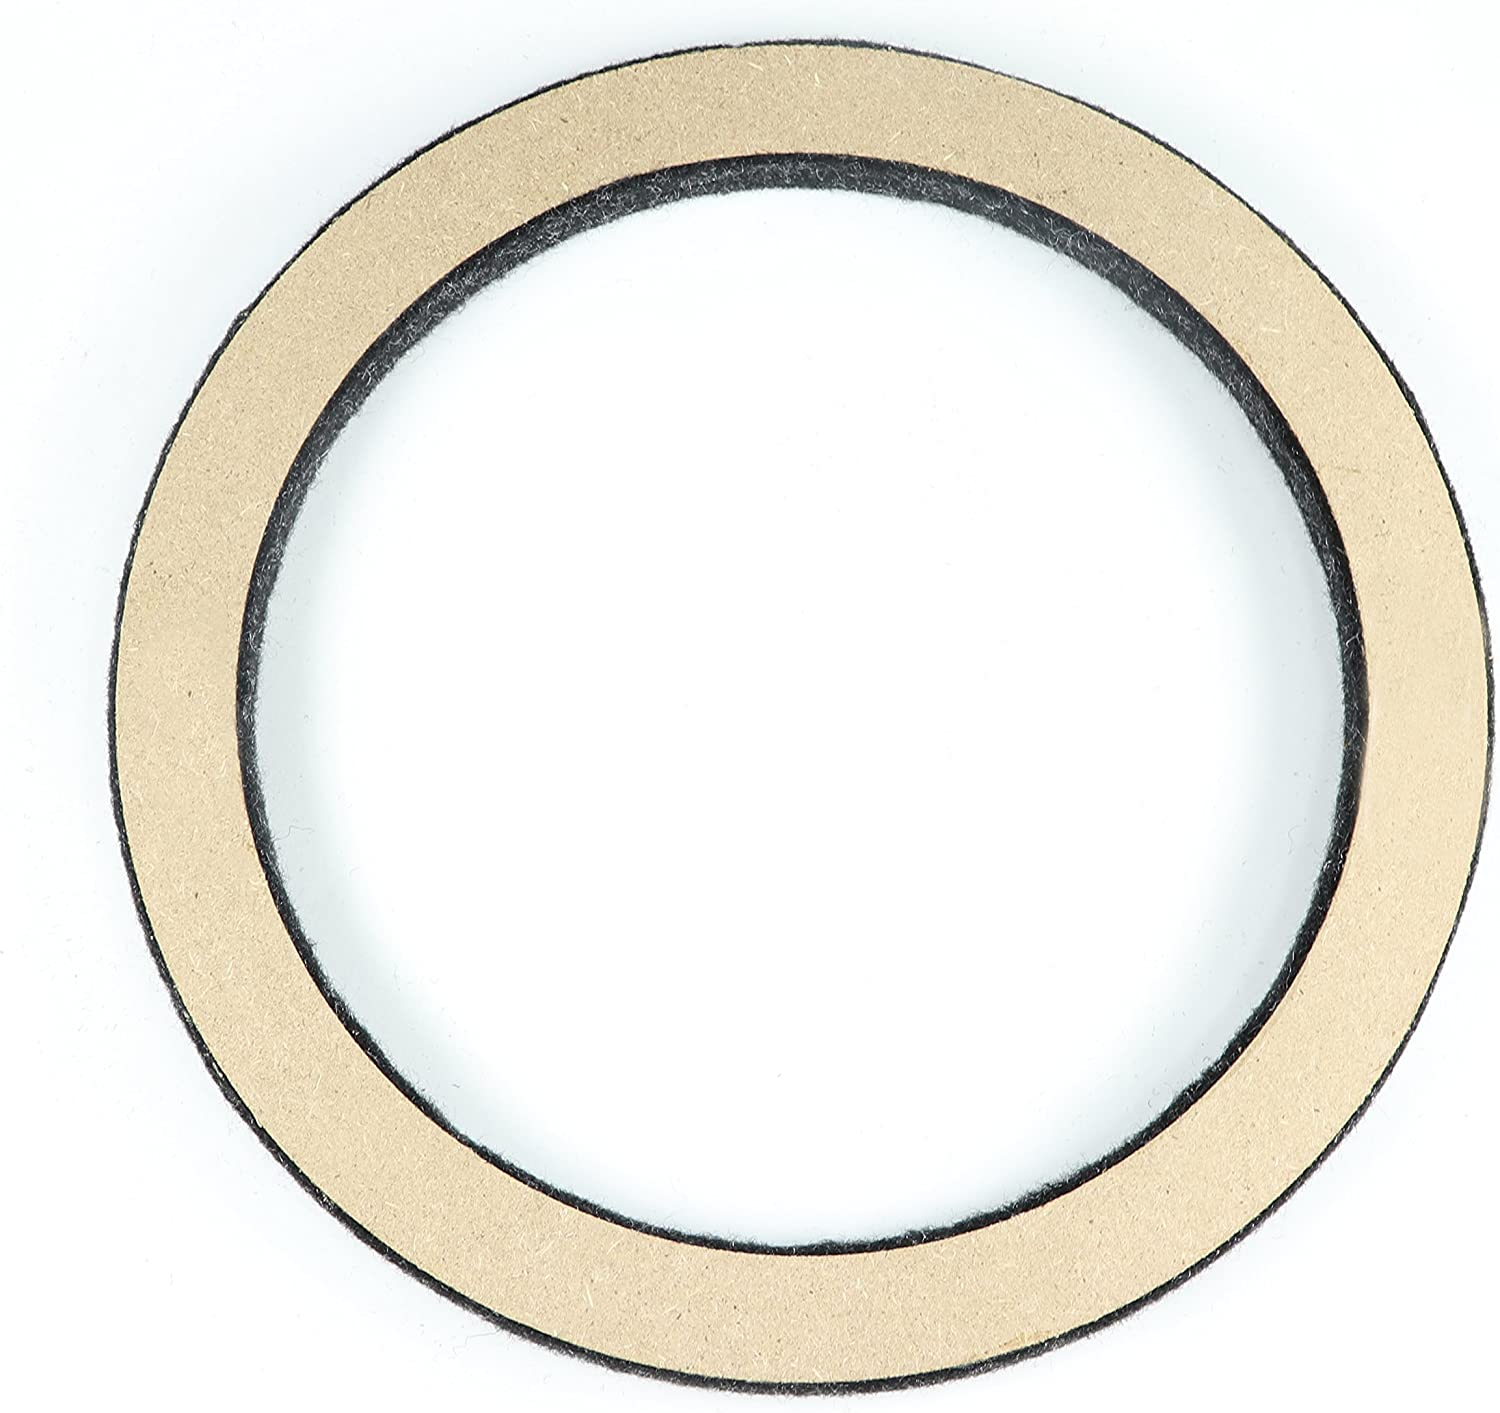 Atrend Universal Mdf Constructed Spacer for 10 Inch Speaker or Sub Adds 3//4 To Depth